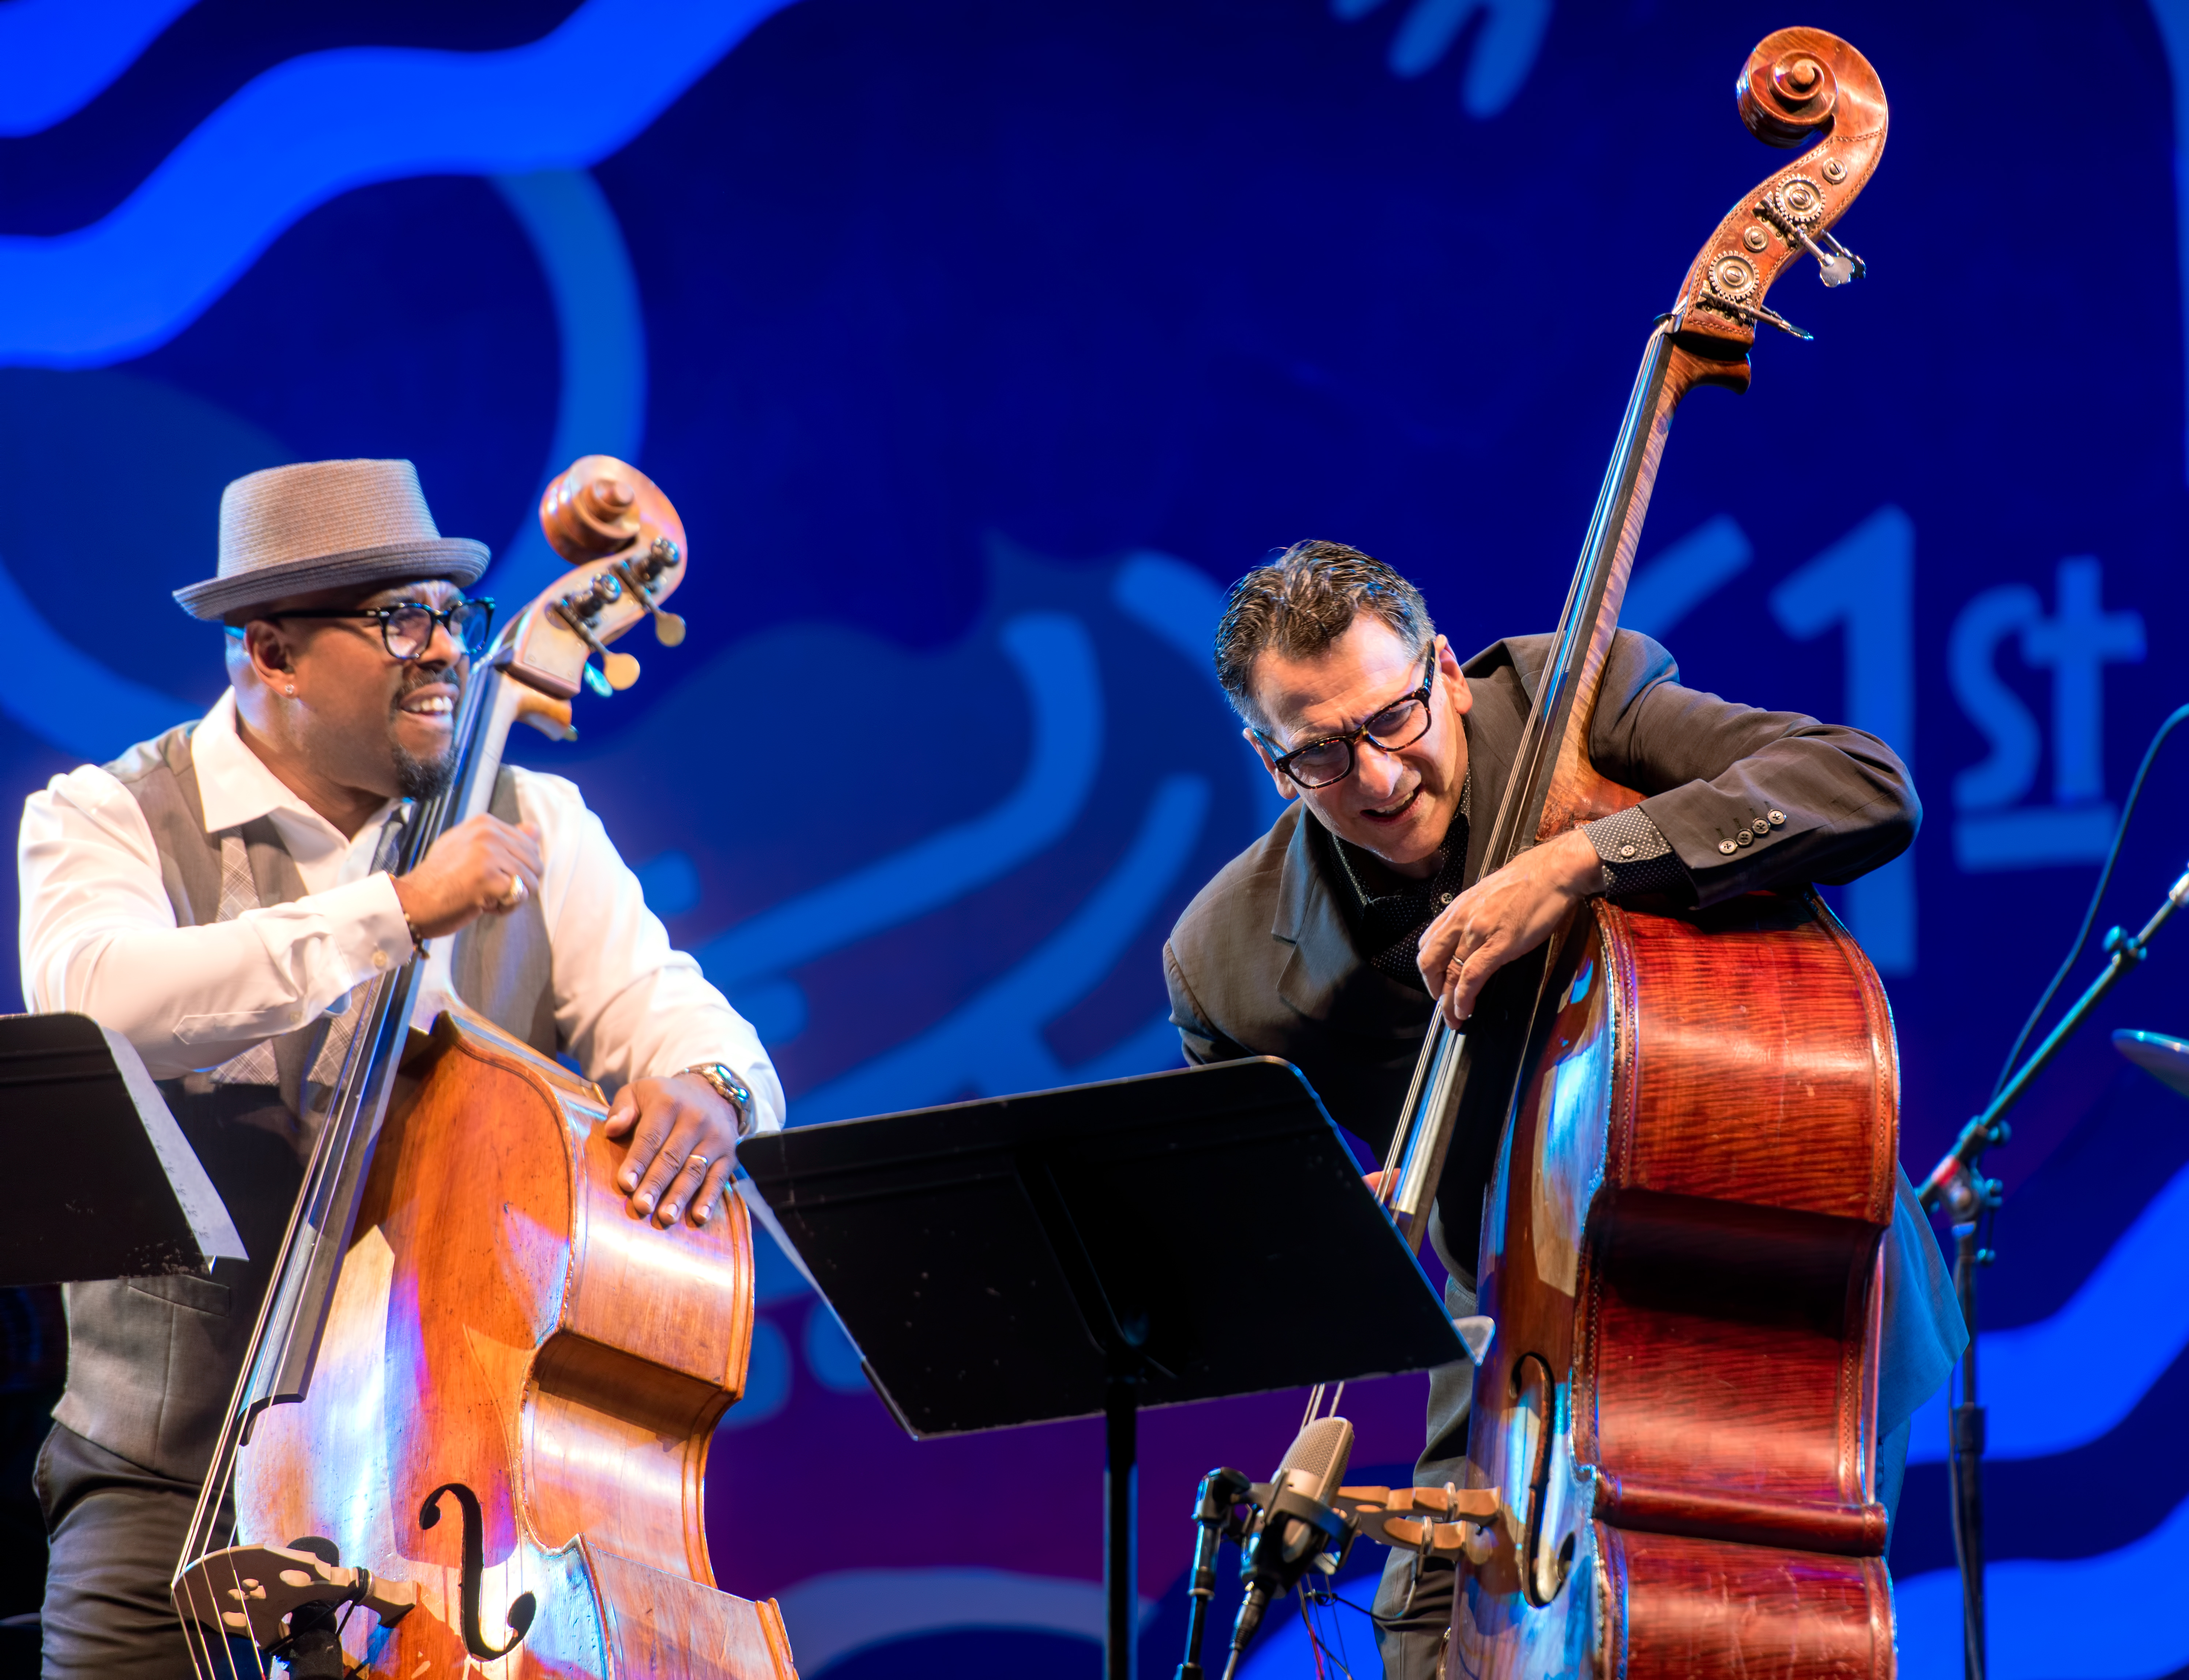 Christian McBride and John Patitucci with Remembering Ray Brown at the Monterey Jazz Festival 2018